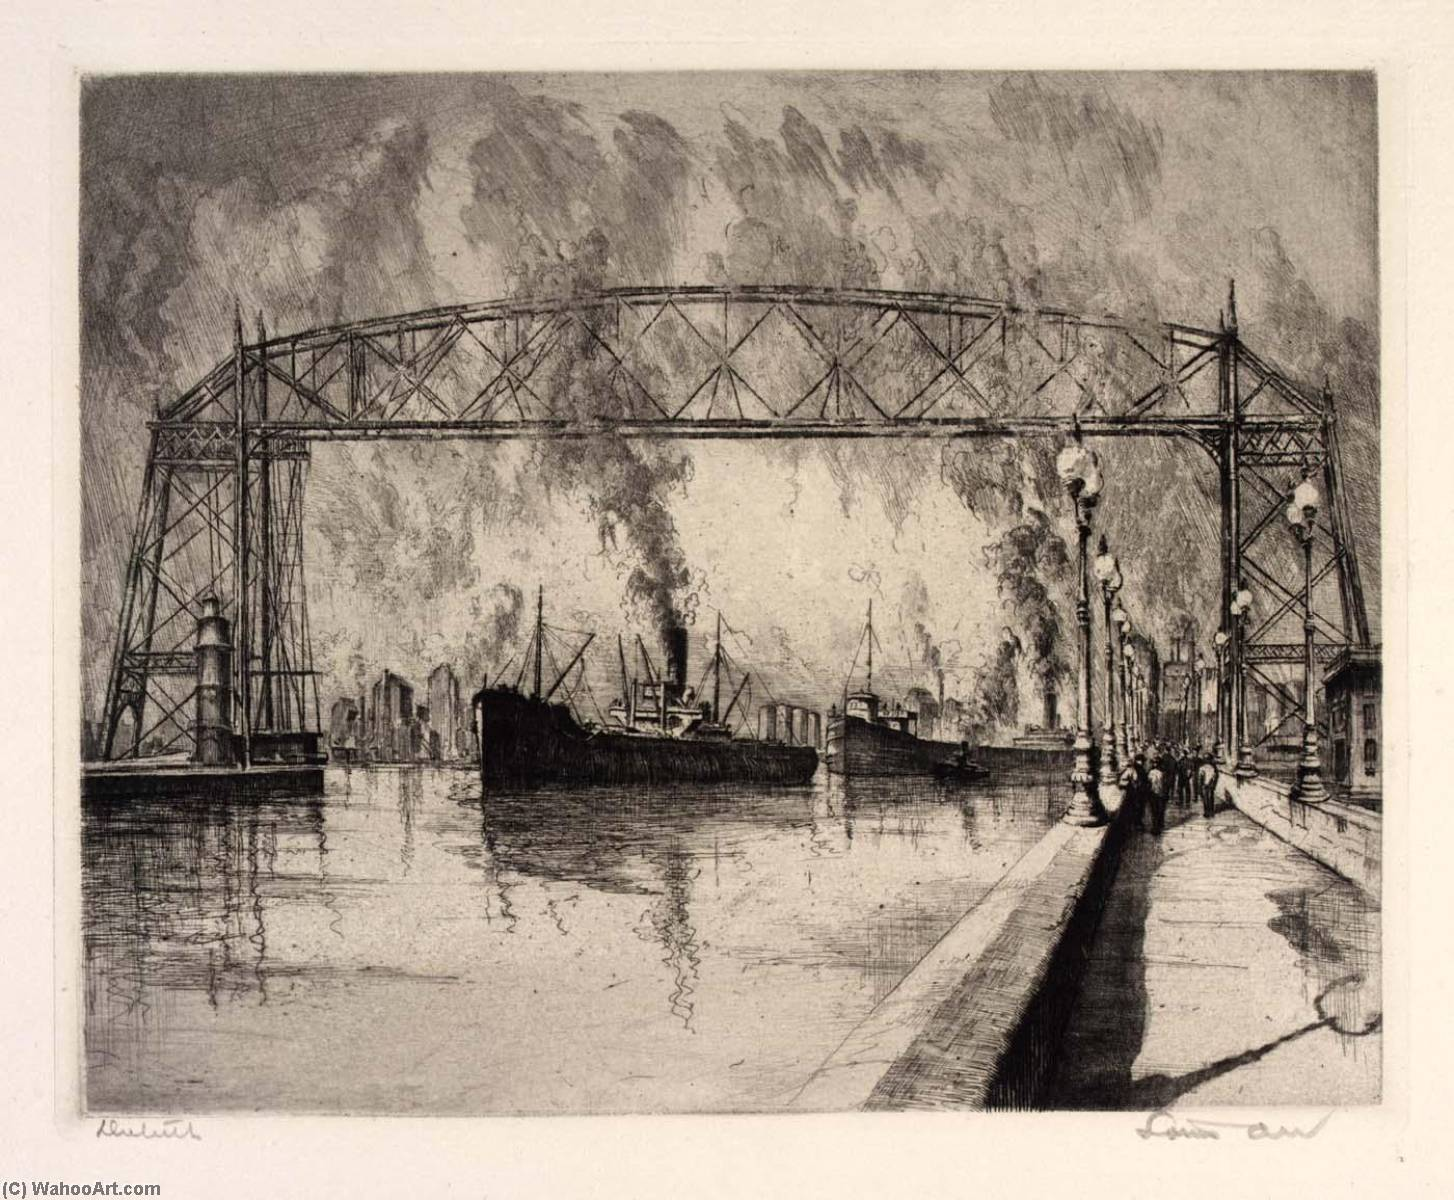 (Ports of America, portfolio) Duluth, Etching by Louis Orr